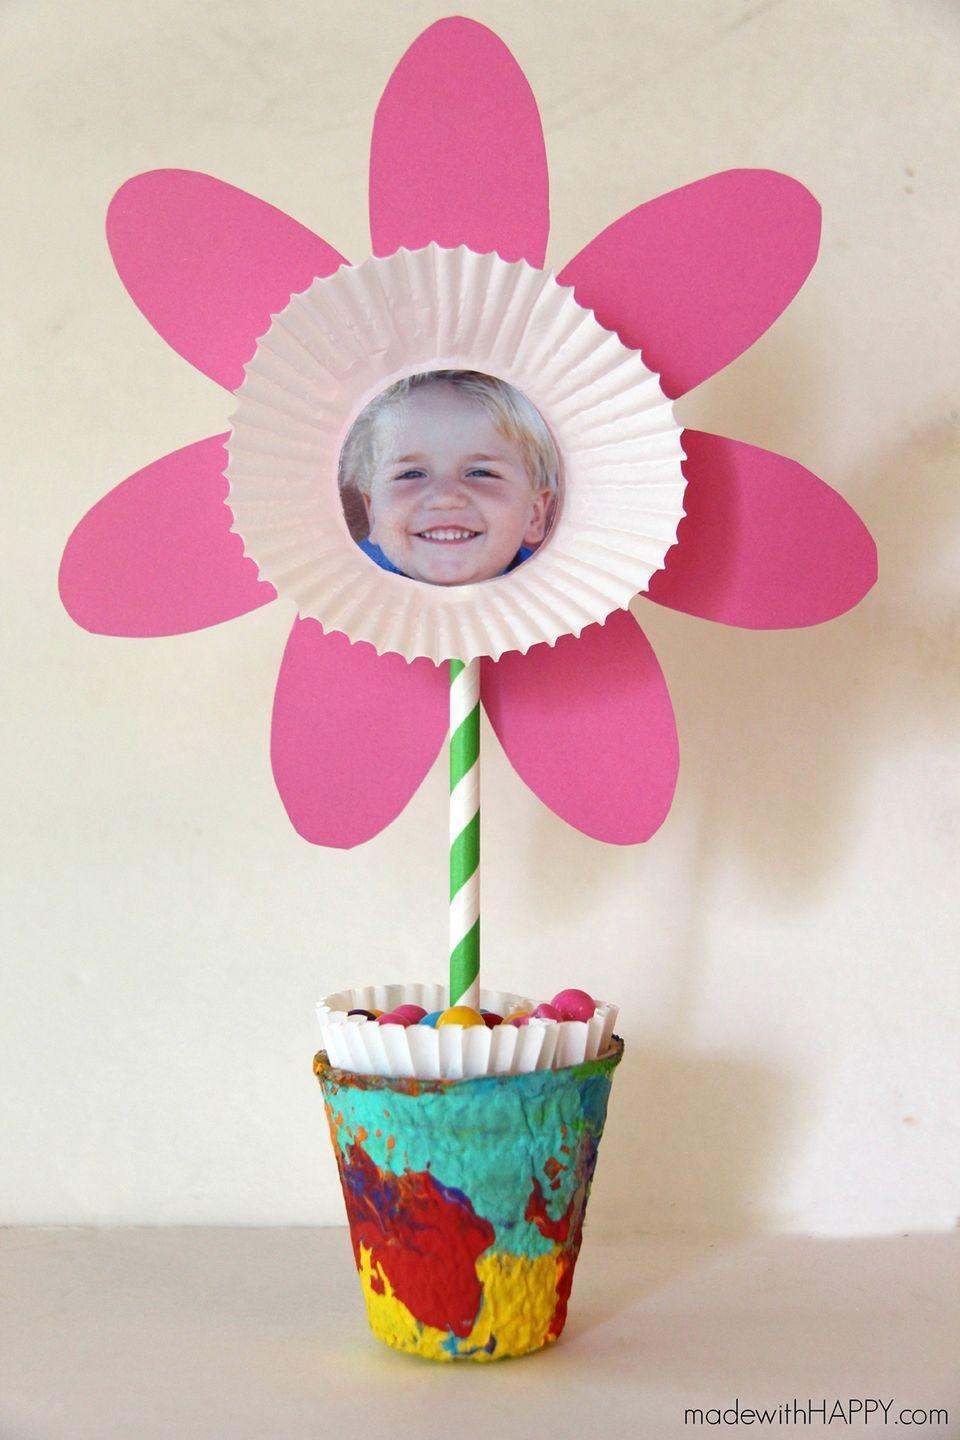 """<p>Mom will adore having a """"garden"""" of her kids, who will love painting the little flower pot.</p><p><strong>Get the tutorial at <a href=""""http://www.madewithhappy.com/picture-flower-kids-craft-free-printable-flower/#_a5y_p=6186734"""" rel=""""nofollow noopener"""" target=""""_blank"""" data-ylk=""""slk:Made With Happy"""" class=""""link rapid-noclick-resp"""">Made With Happy</a>. </strong></p>"""